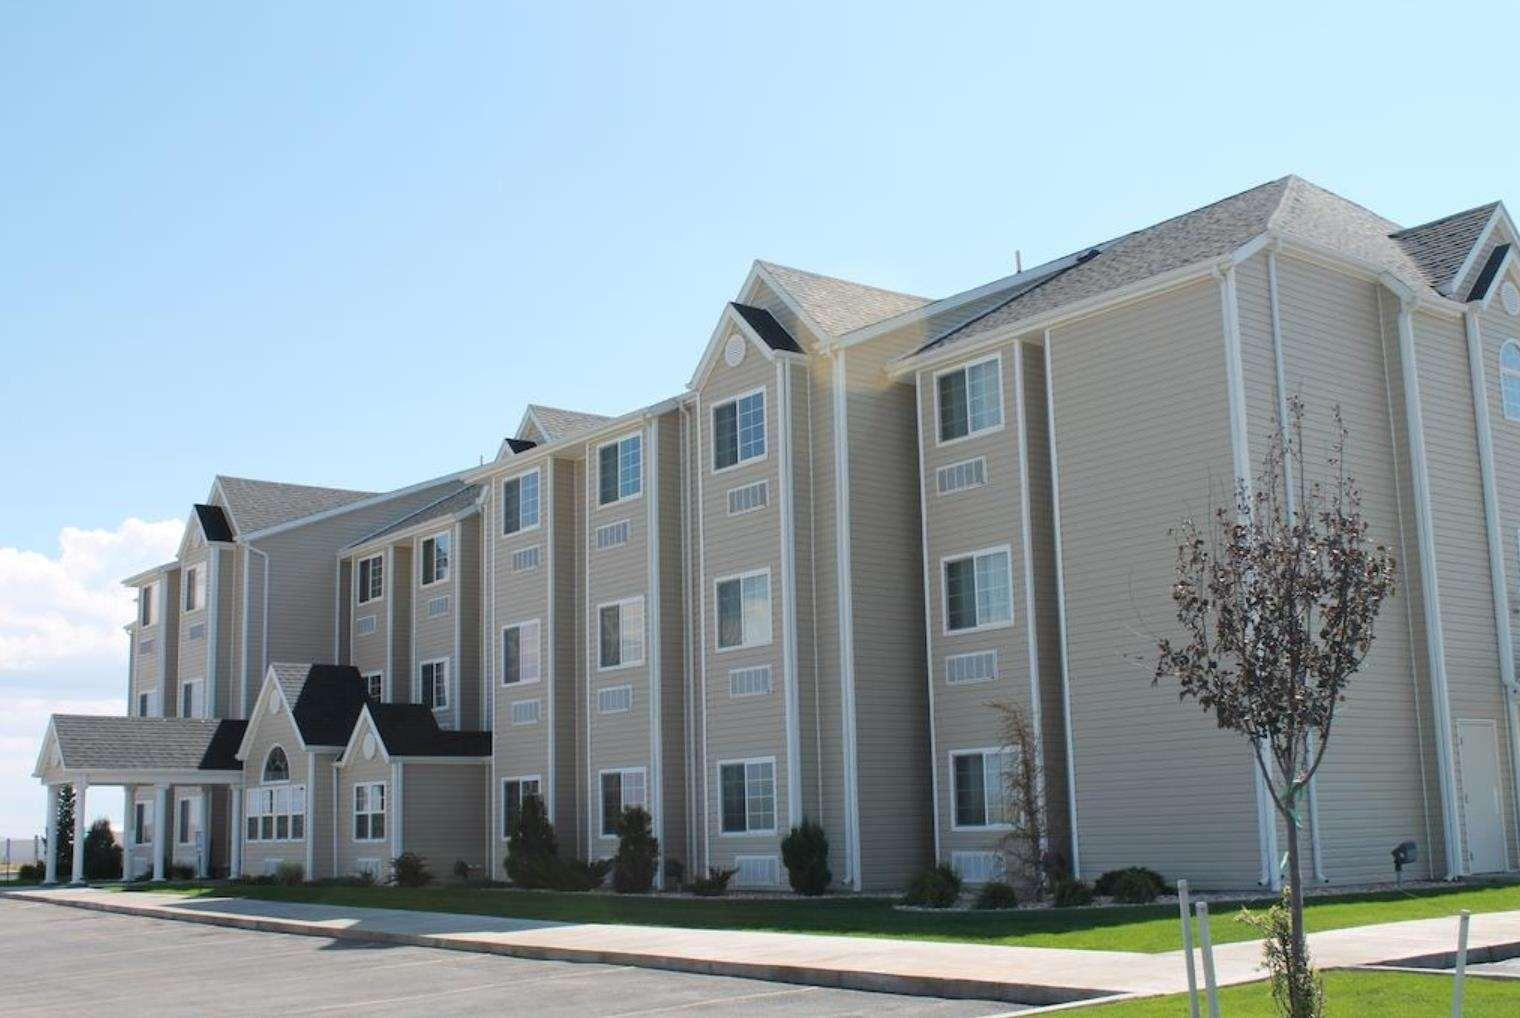 Microtel Inn And Suites By Wyndham Rawlins